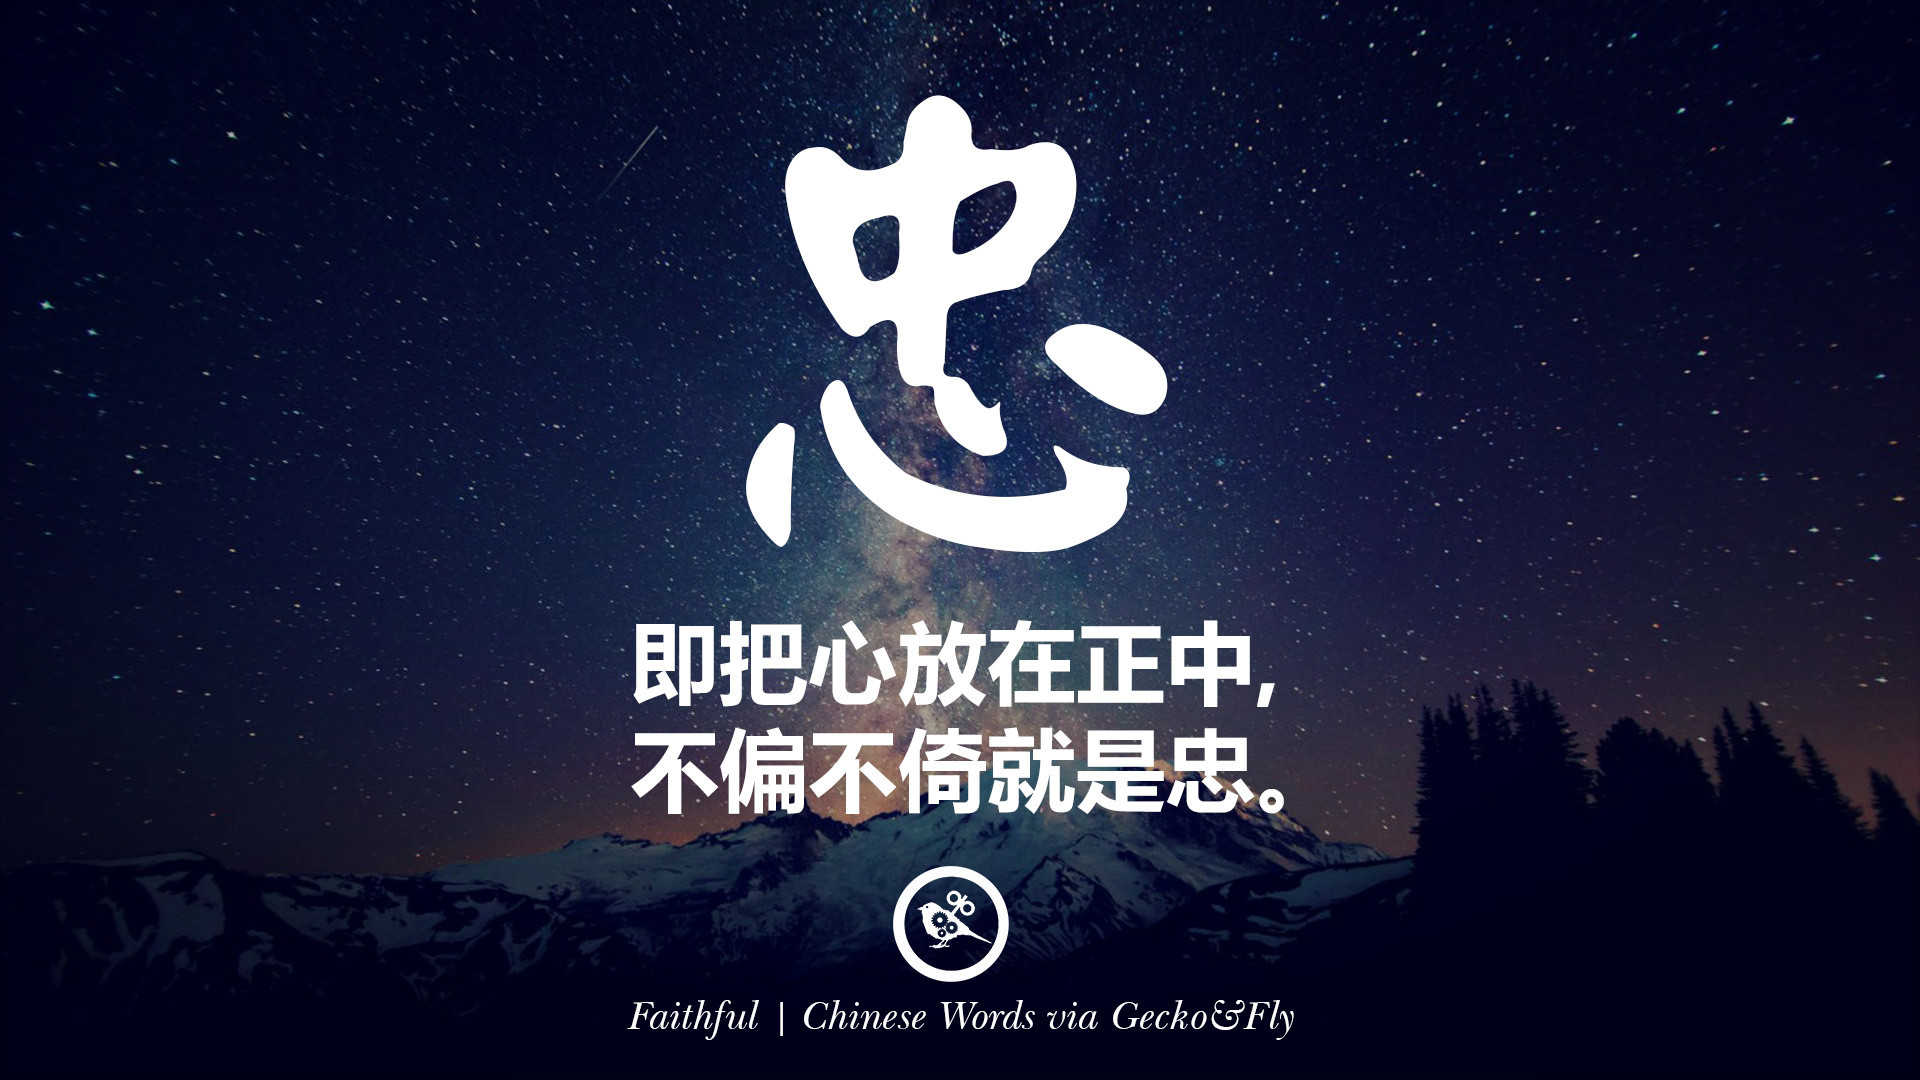 Res: 1920x1080, 忠 means faithful or loyalty, it too consist of 2 characters, which is 中  (Middle) and 心 (Heart).